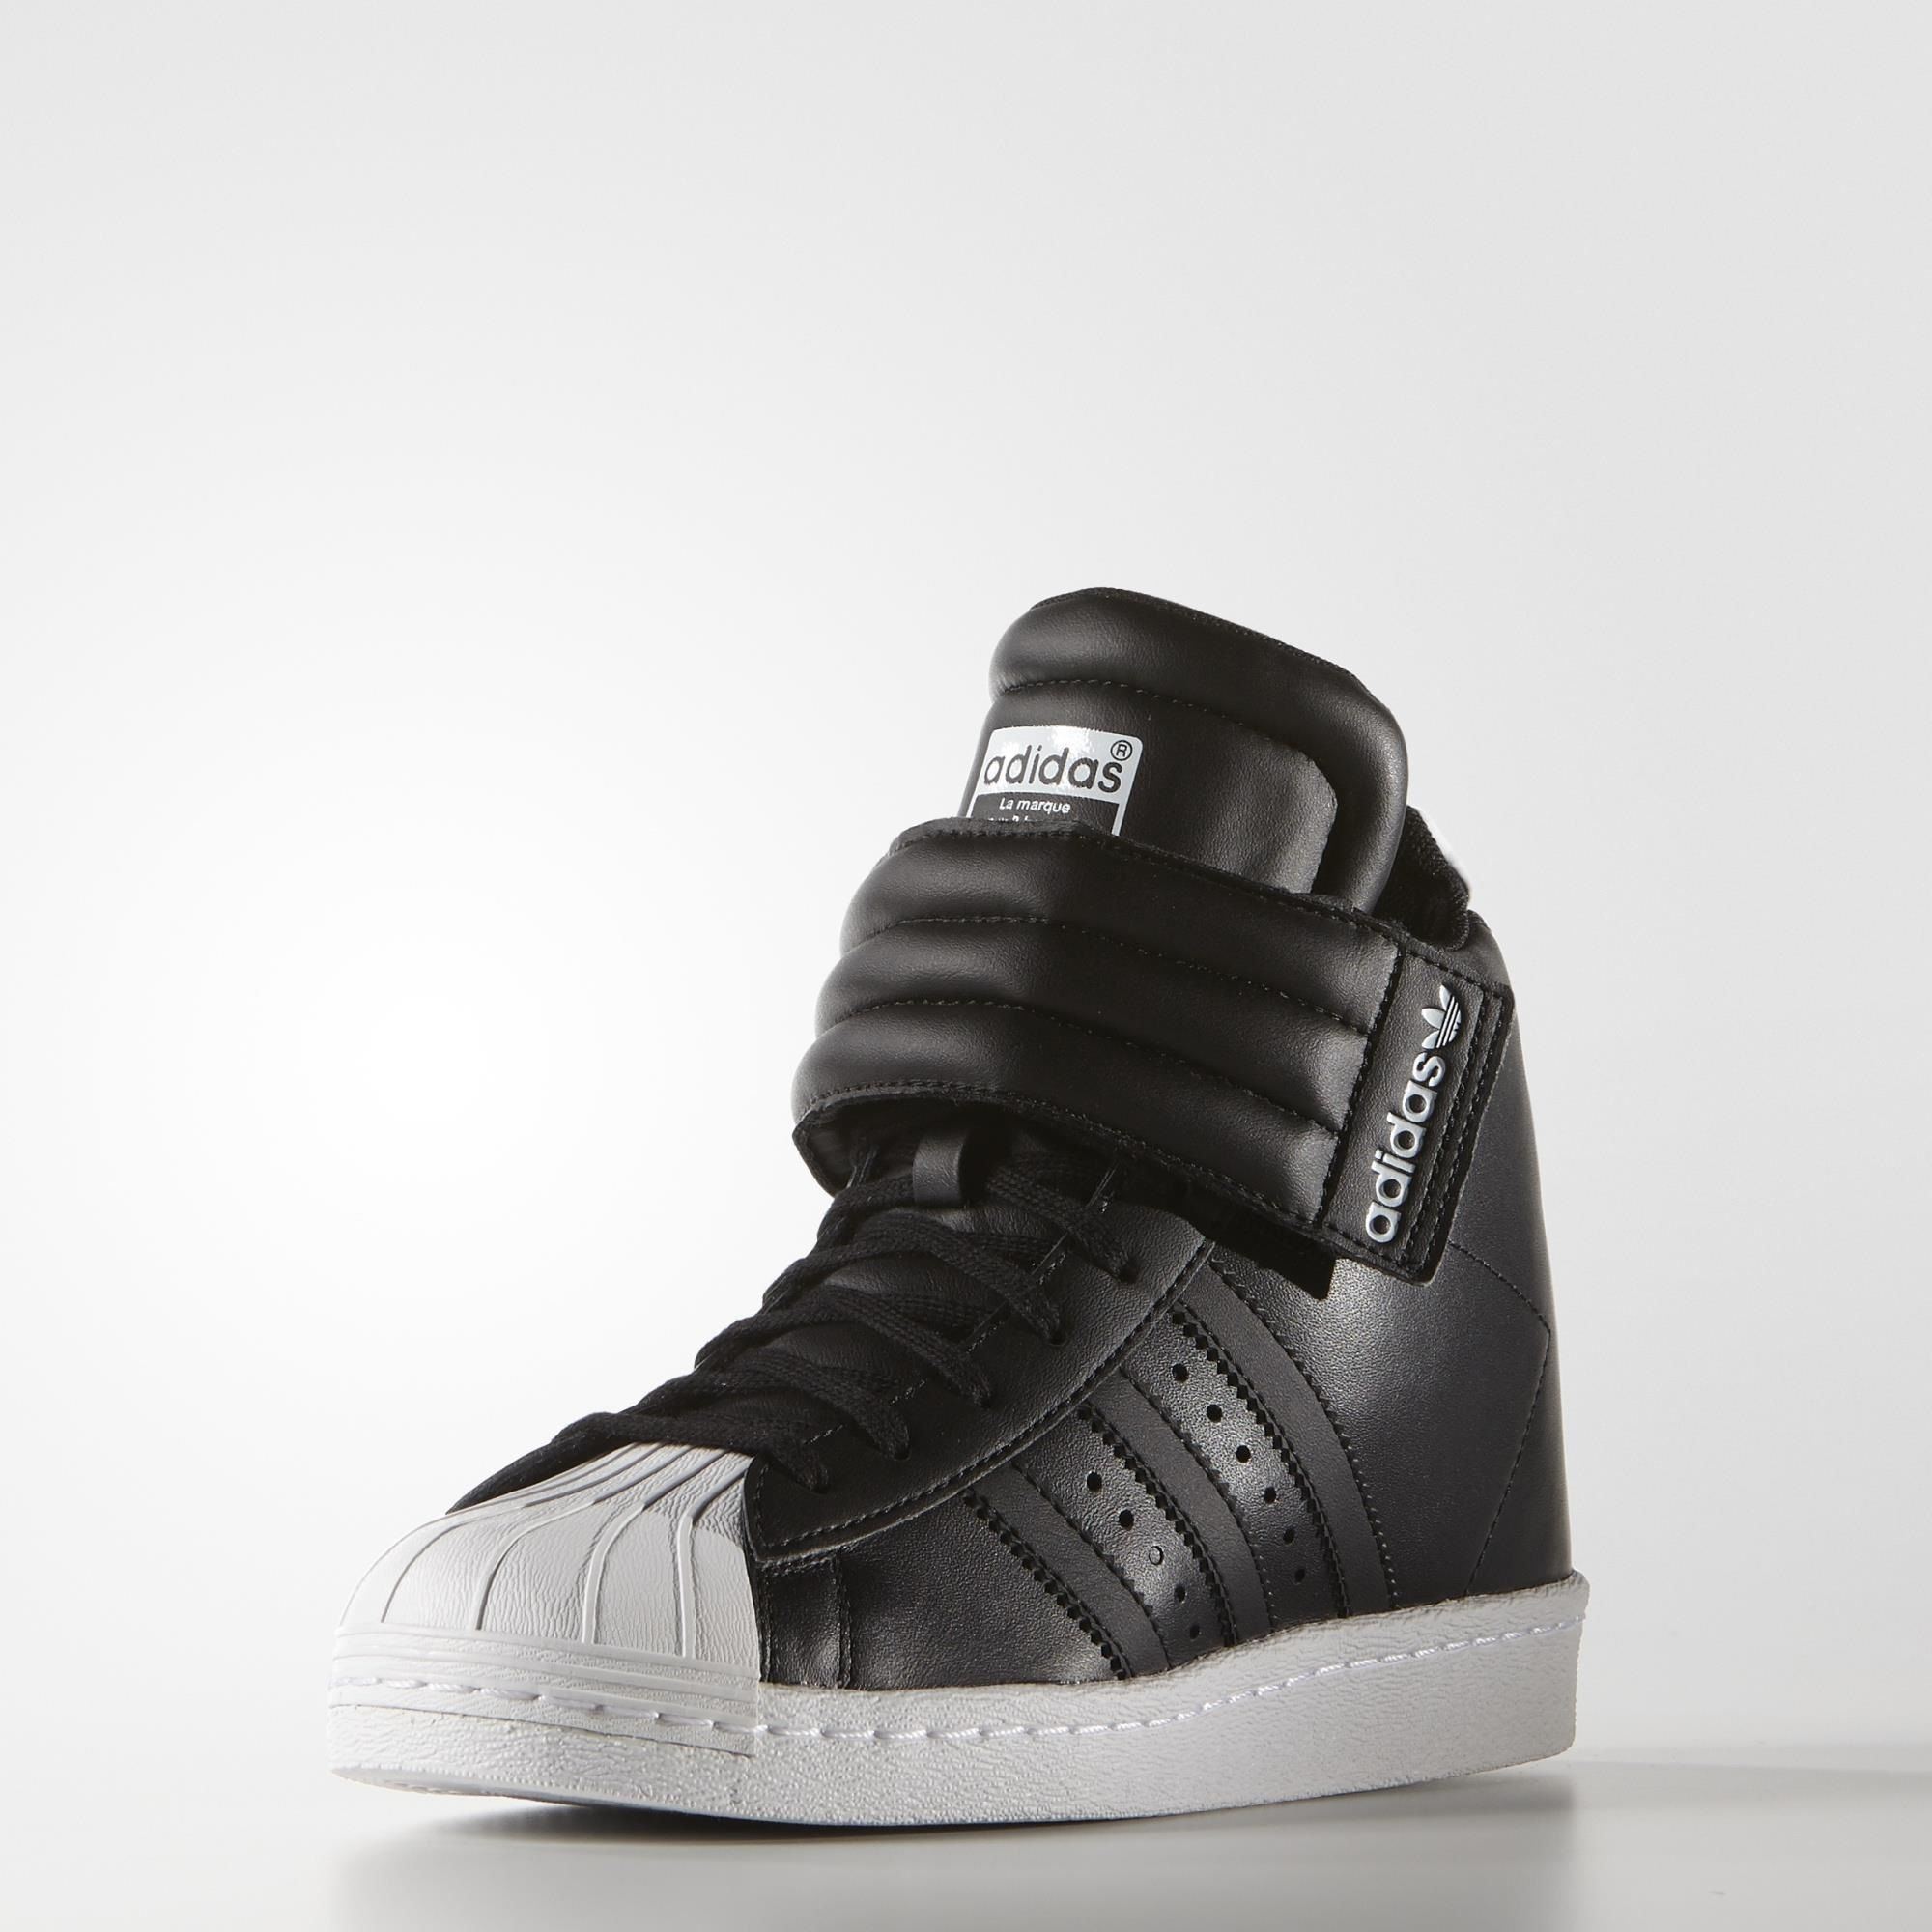 Adidas Superstar Up $89.99 Sneakerhead s79382